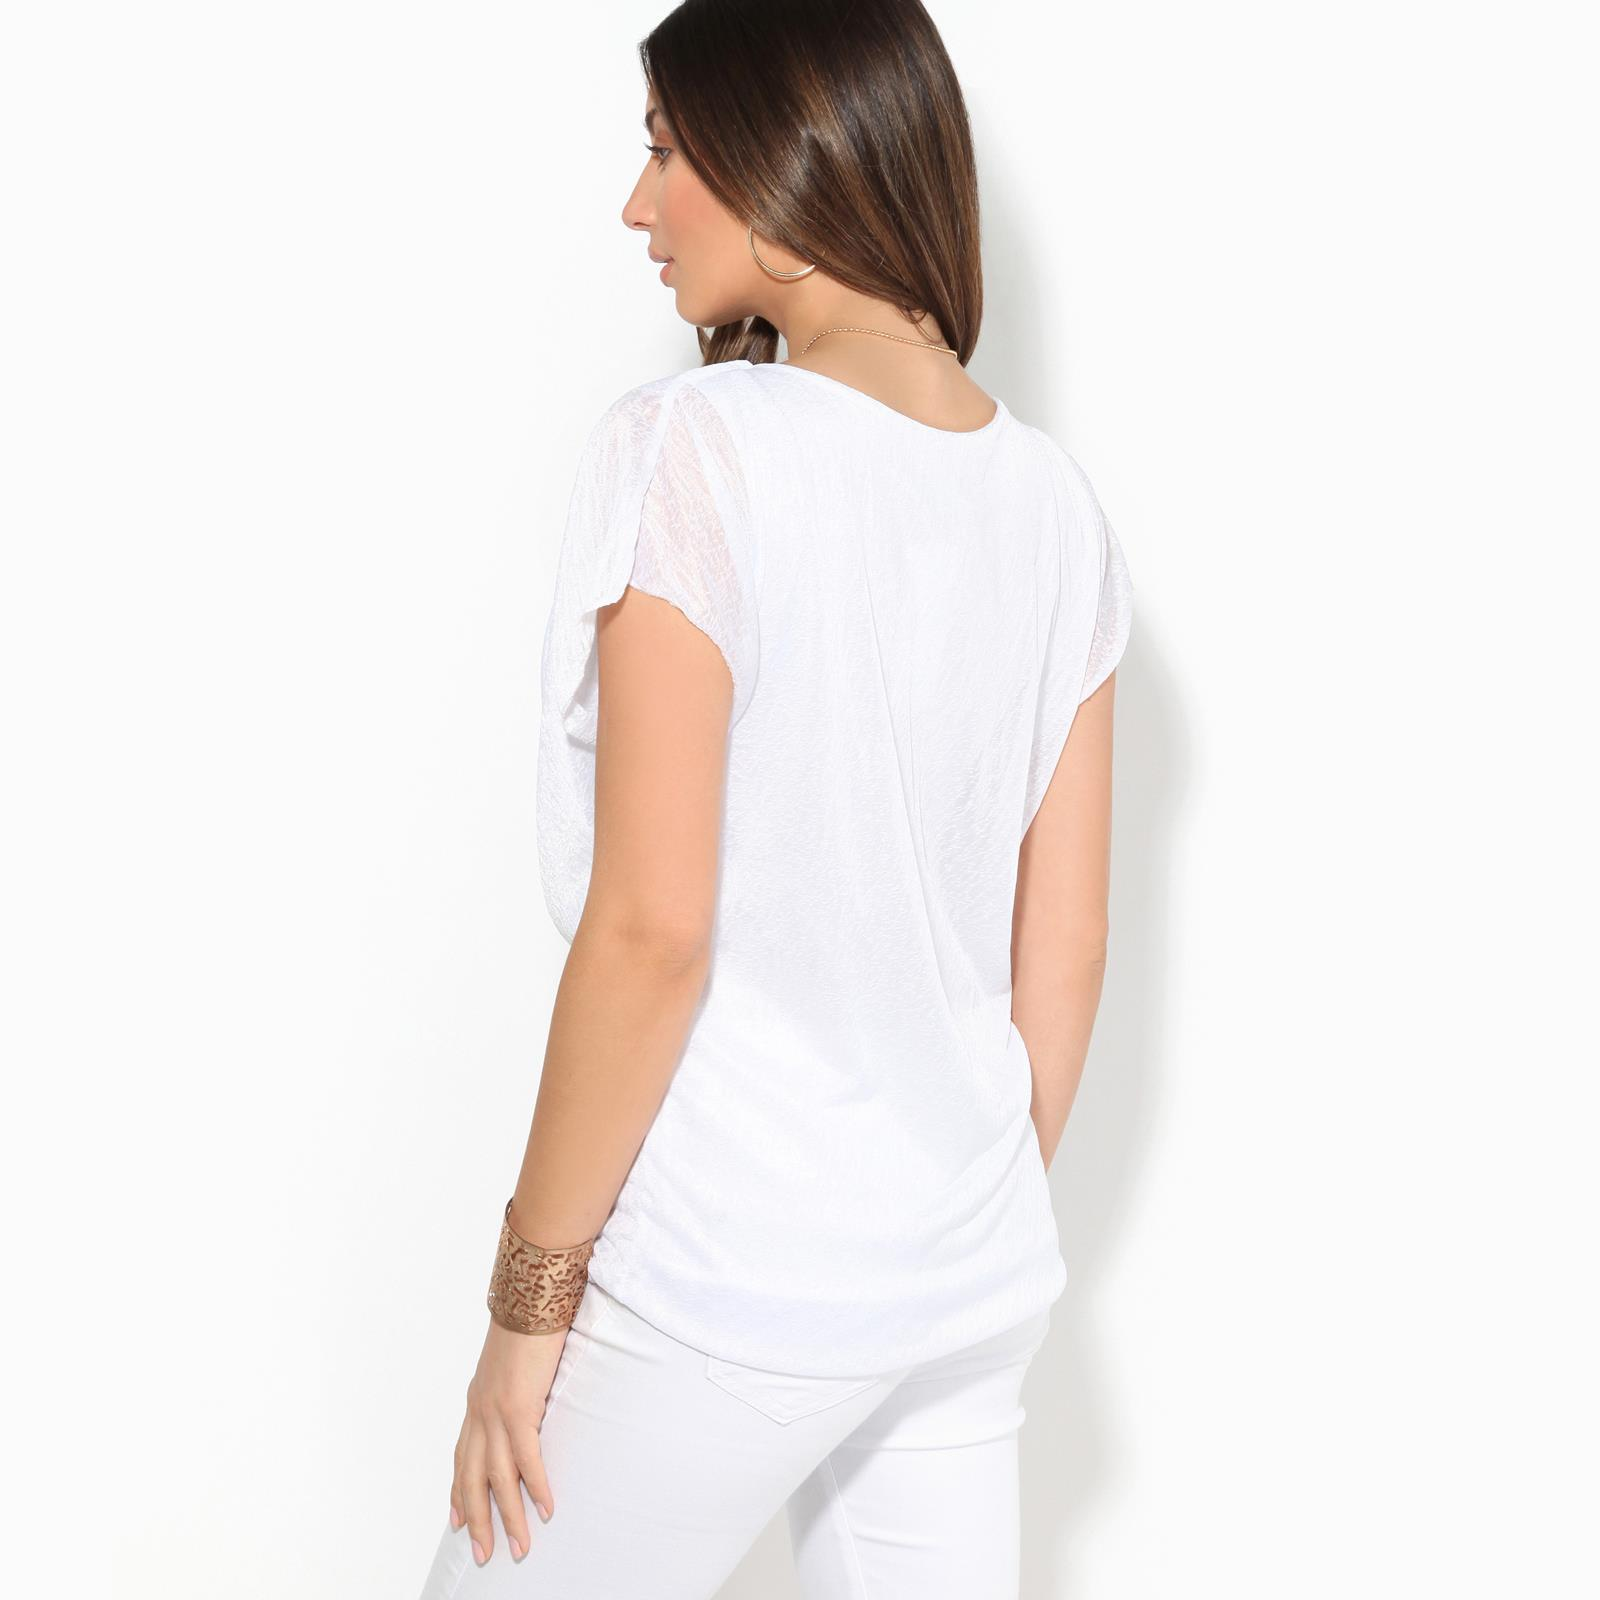 Womens-Ladies-Loose-Drape-T-Shirt-Pleated-Cowl-Neck-Top-Mesh-Tunic-Blouse-2-in-1 thumbnail 9